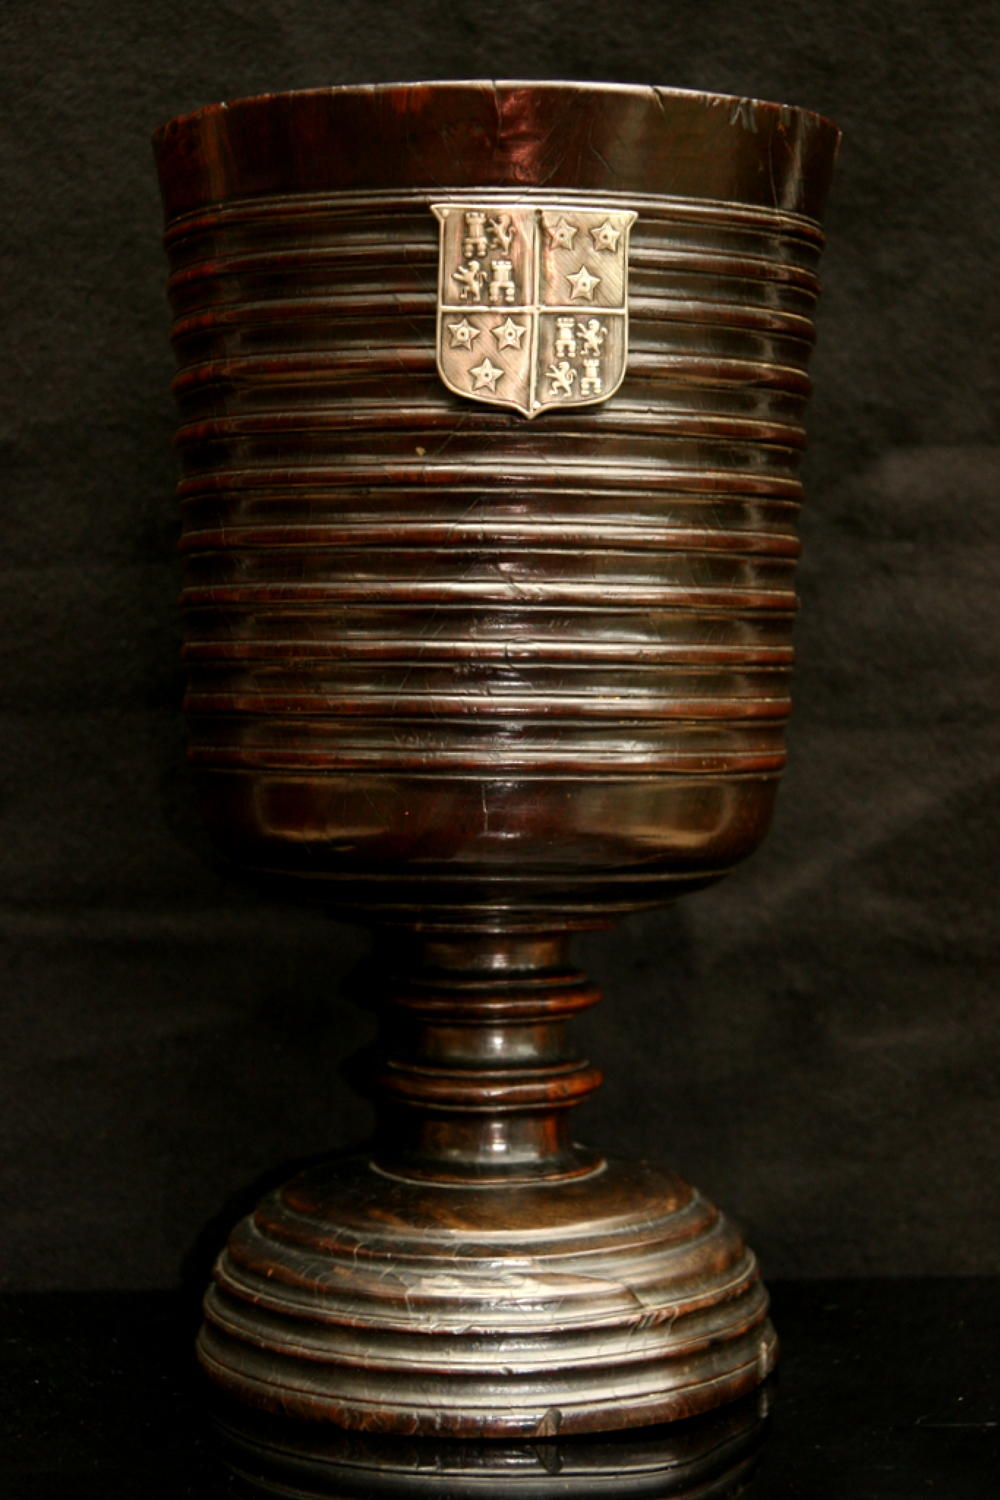 Large Lignum Vitae Loving Cup English 17th century